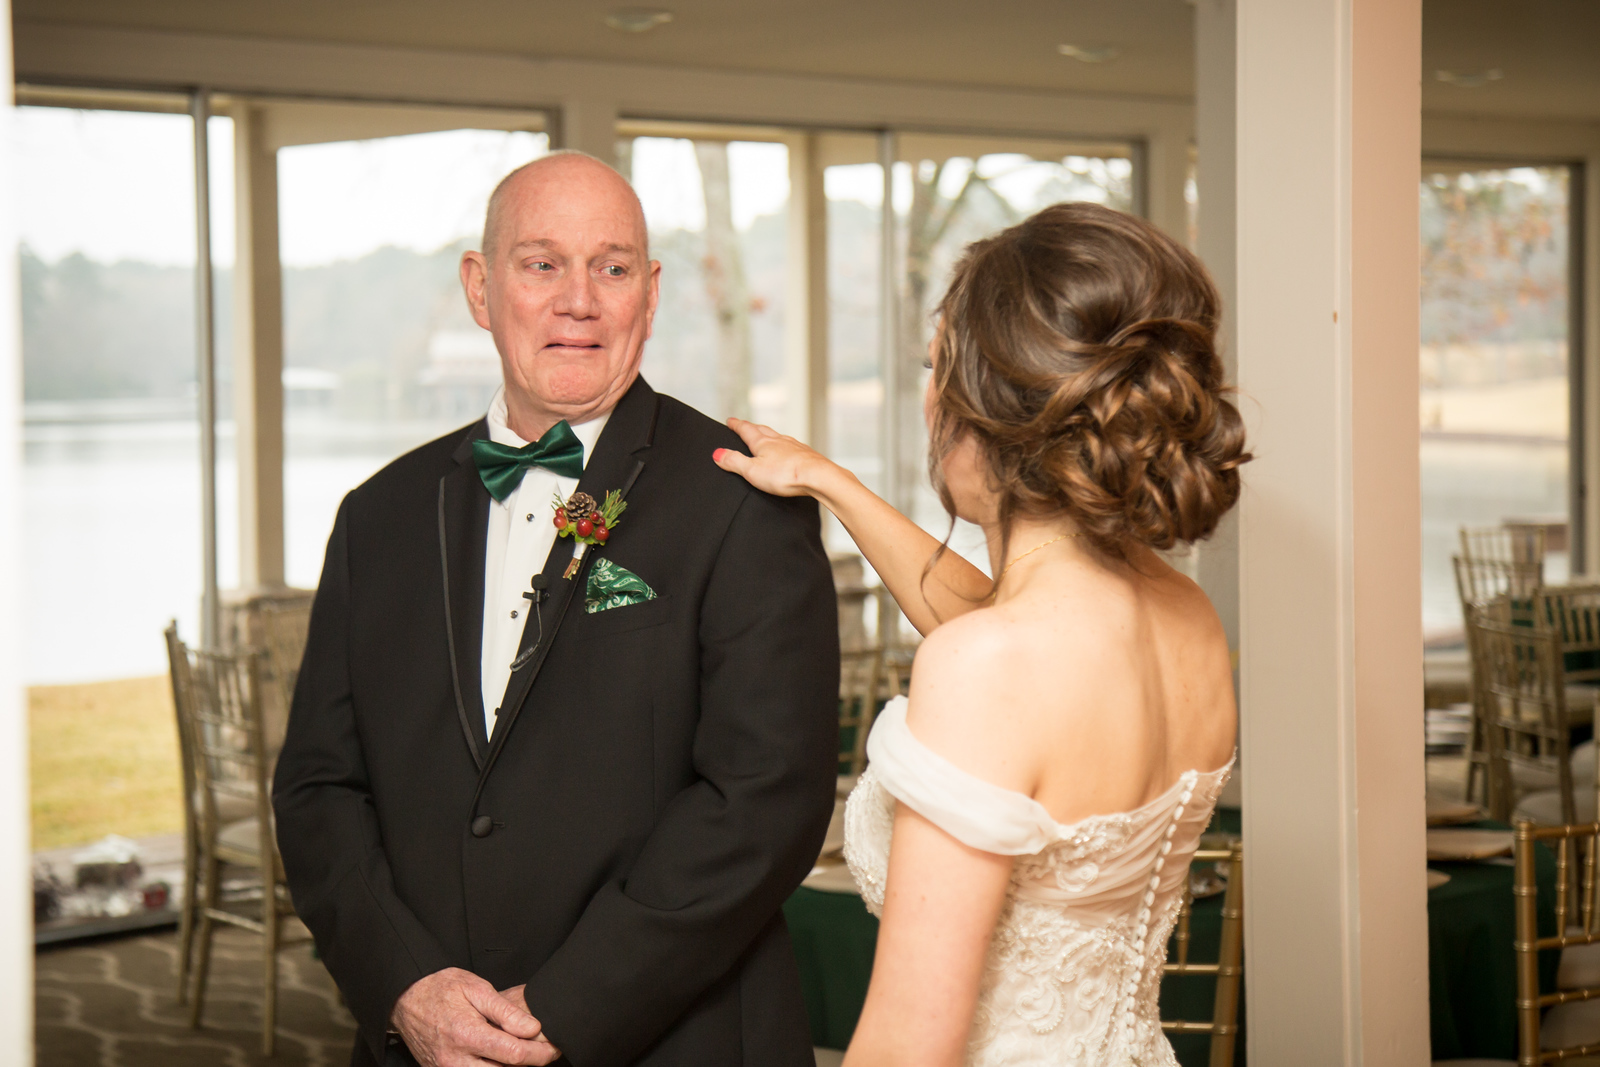 A father crying as he sees his daughter in her wedding dress for the first time